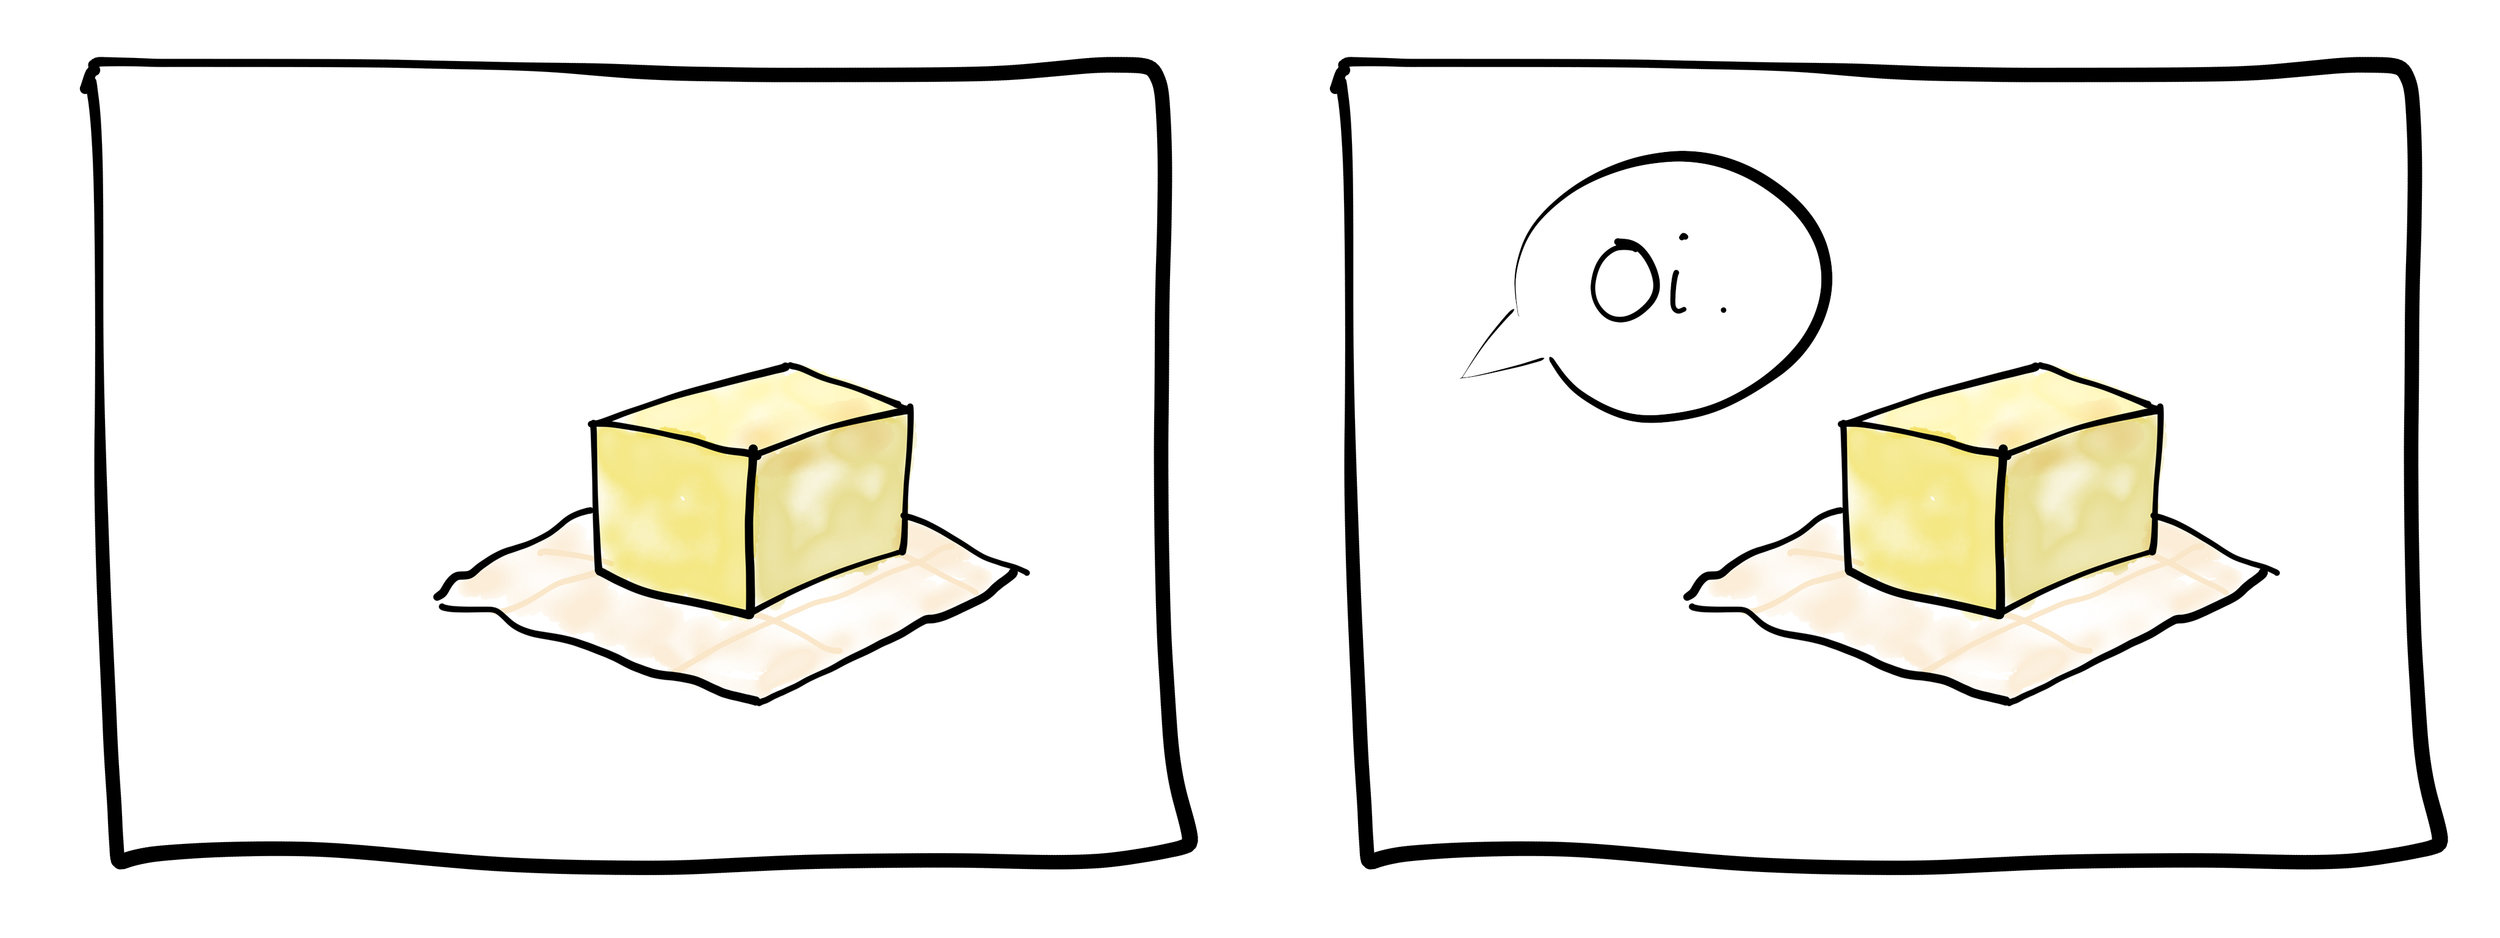 A comic strip about butter